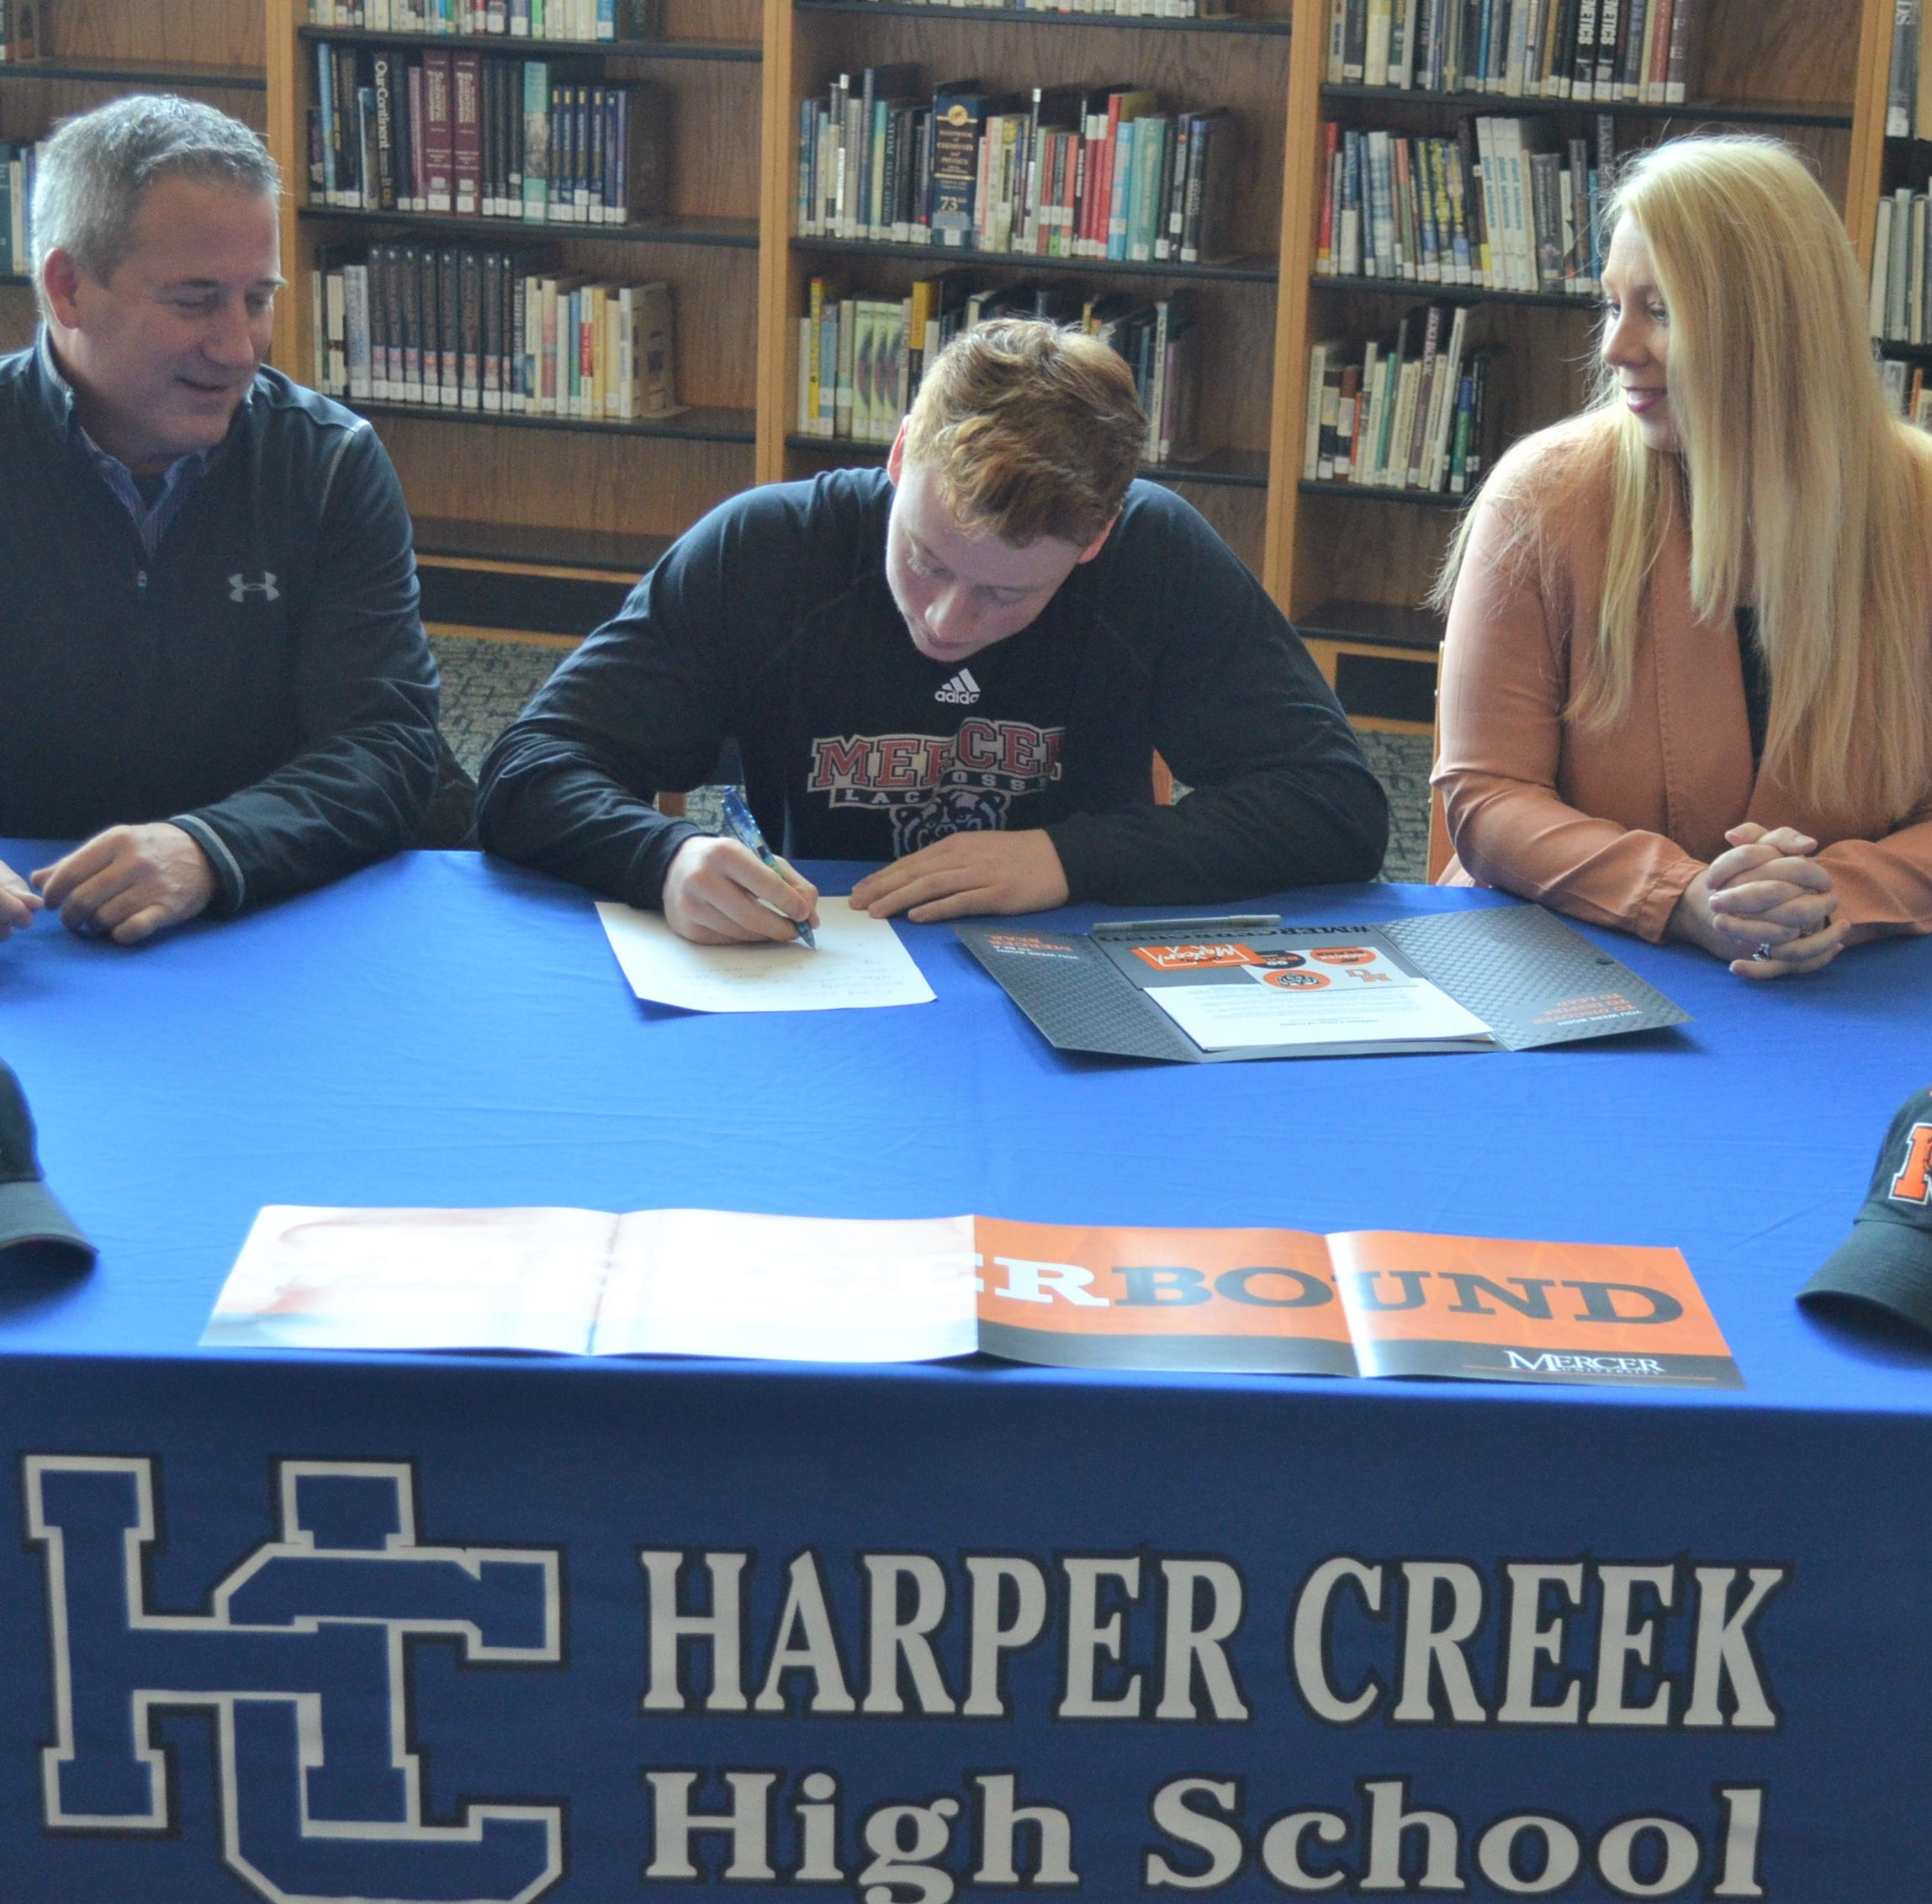 Harper Creek's O'Connor signs to play lacrosse at D-1 school